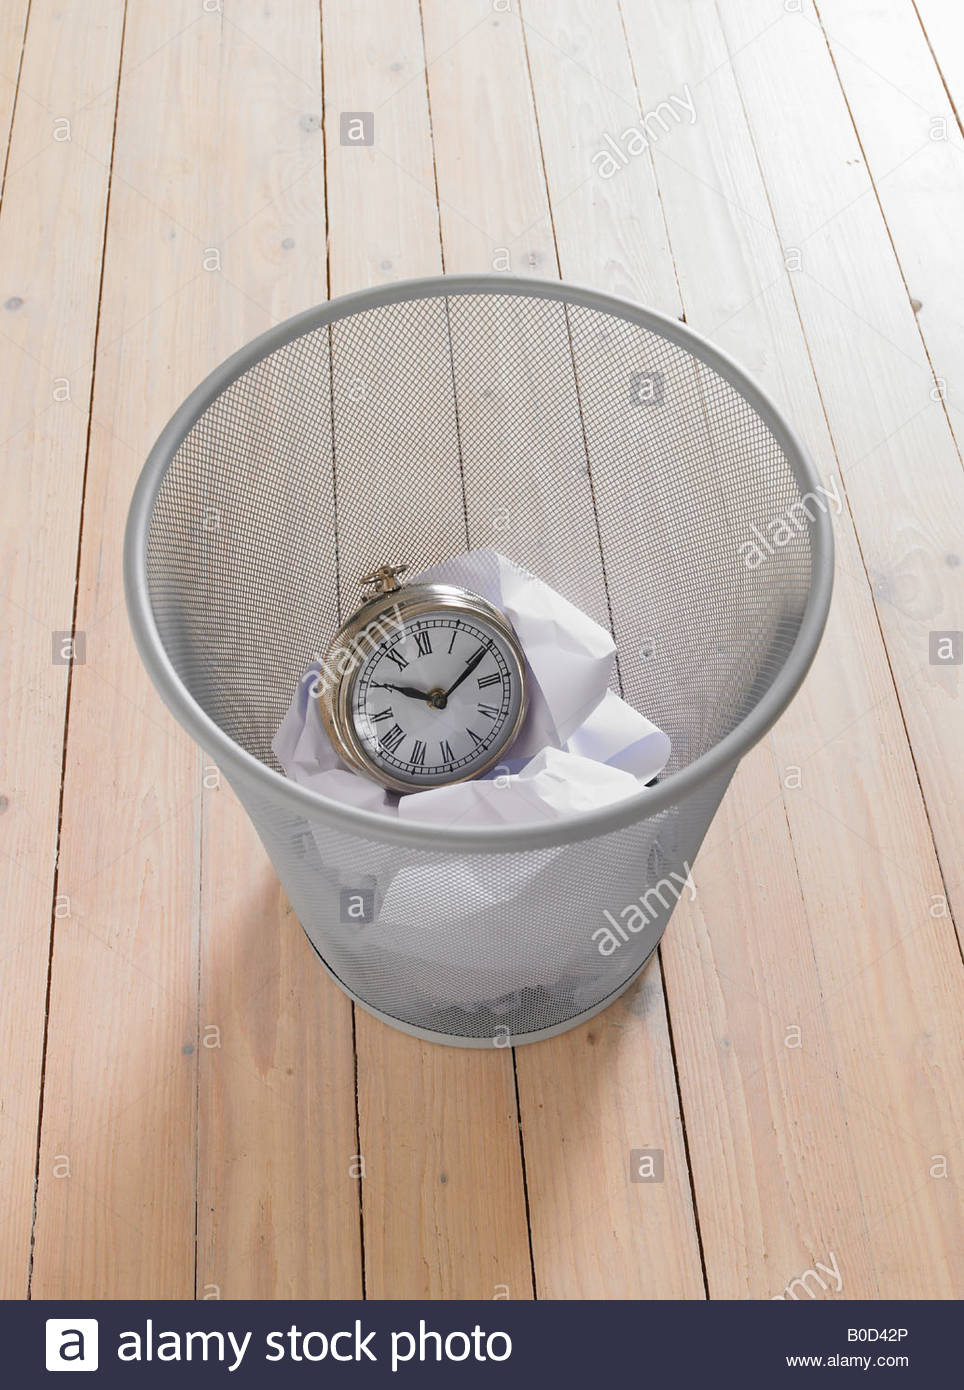 Outdated clock in trash bin - Stock Image